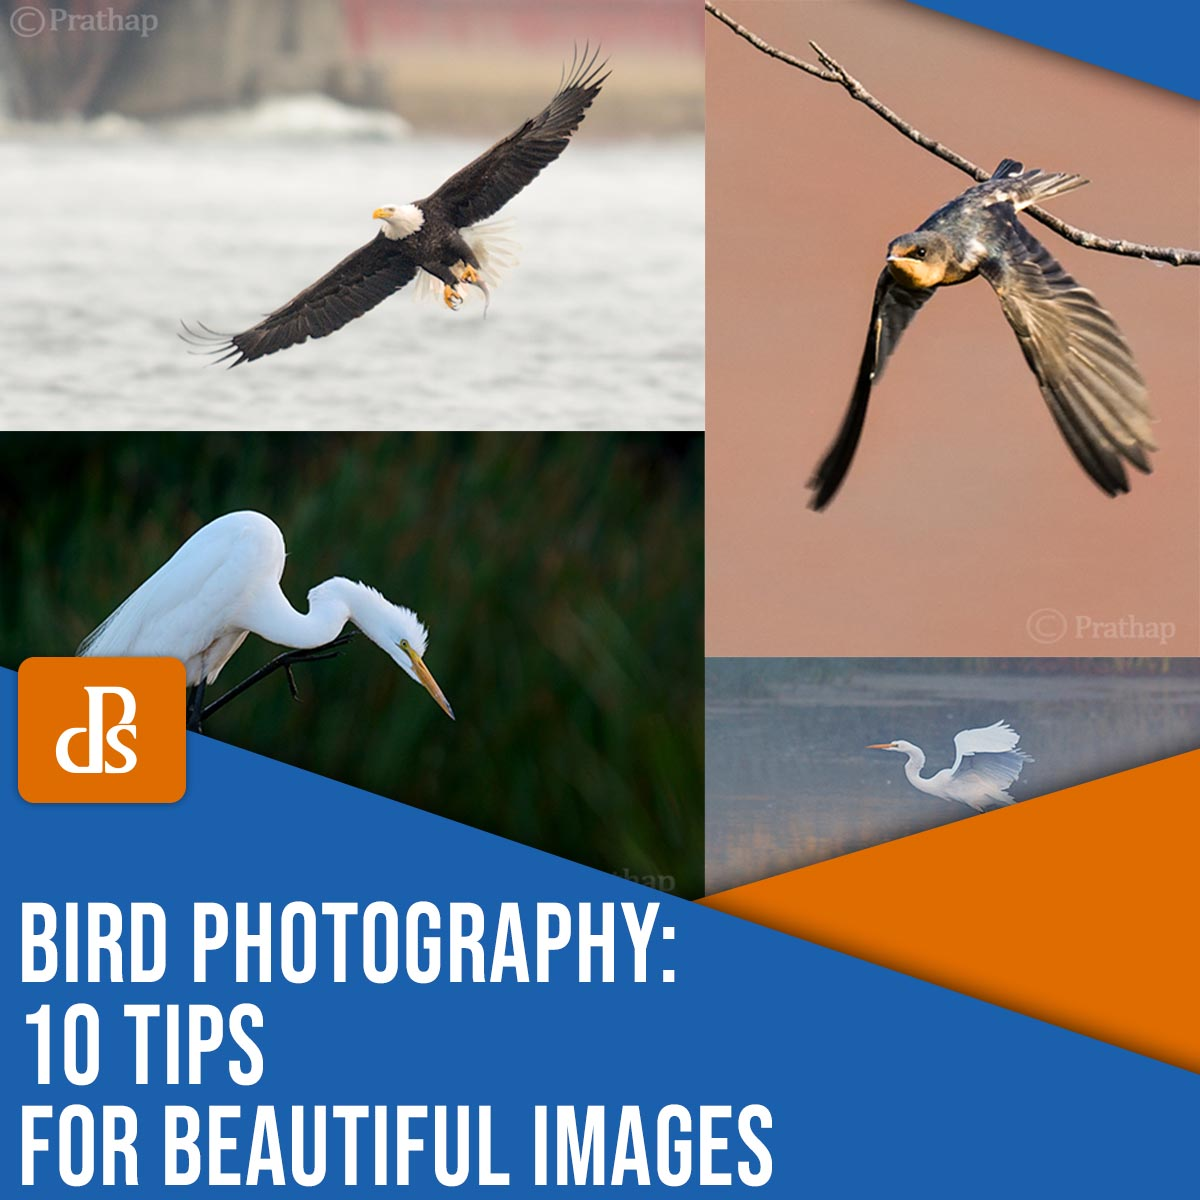 Bird Photography: 10 Tips for Beautiful Images